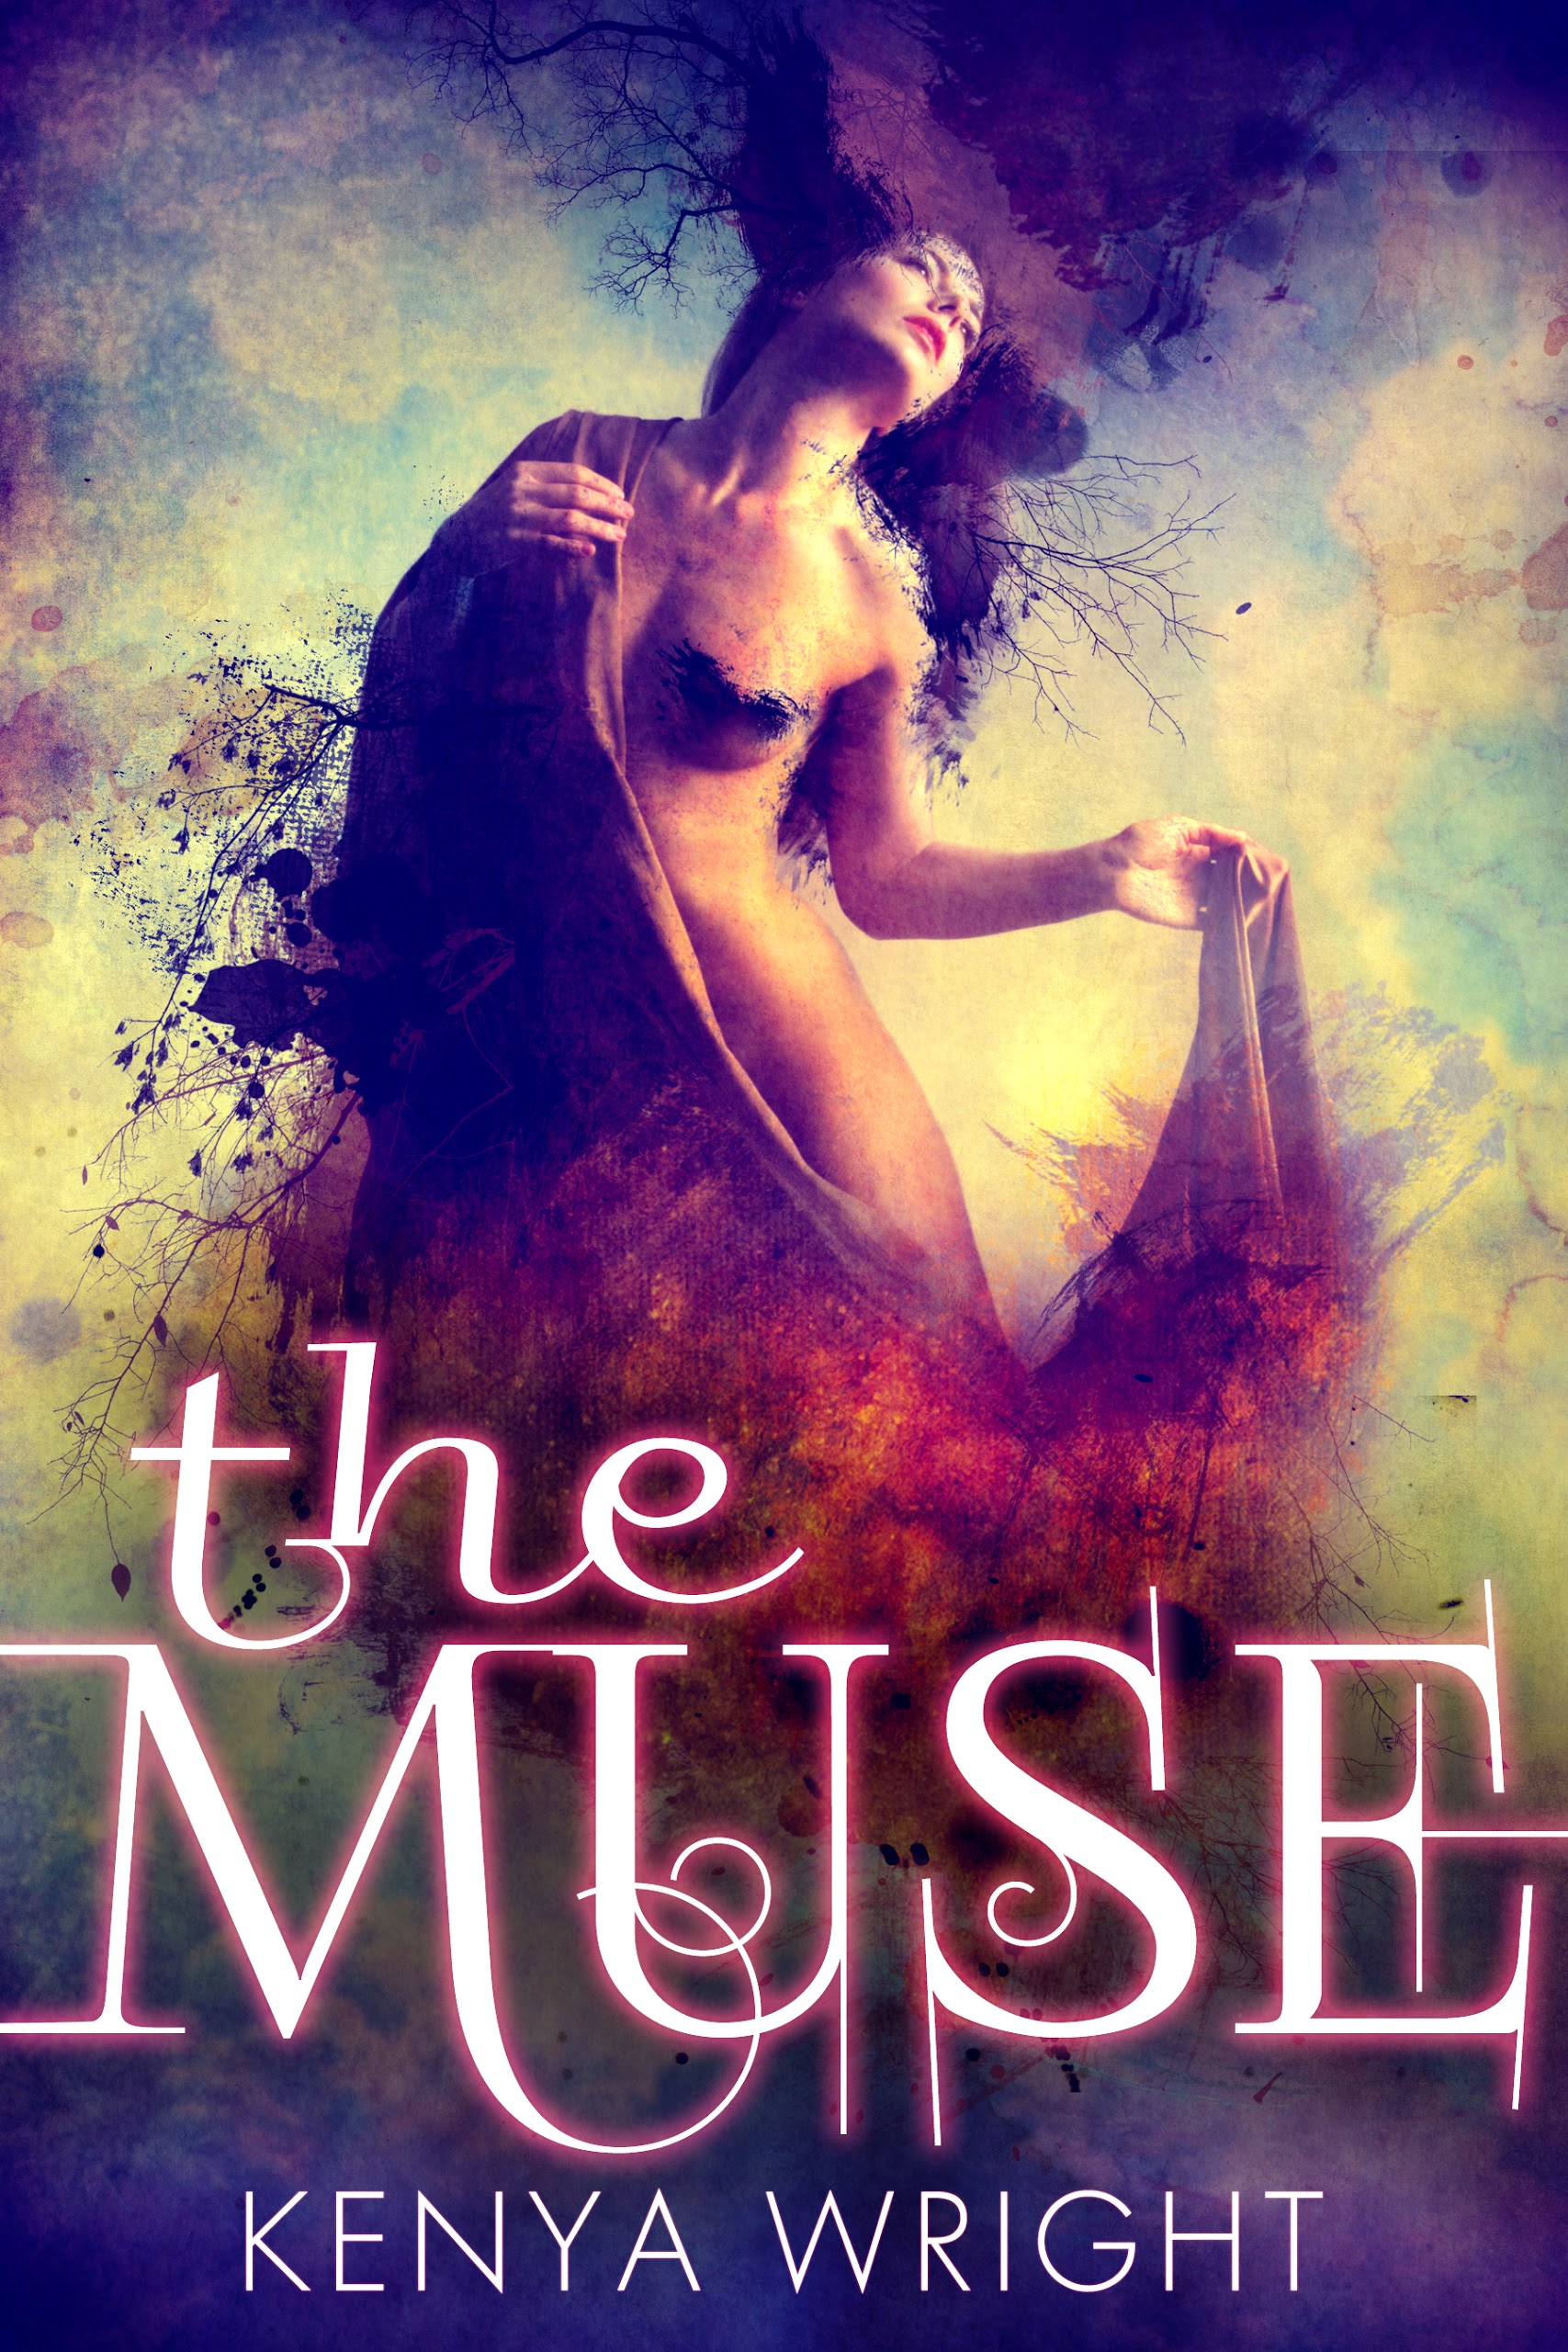 The Muse by Kenya Wright